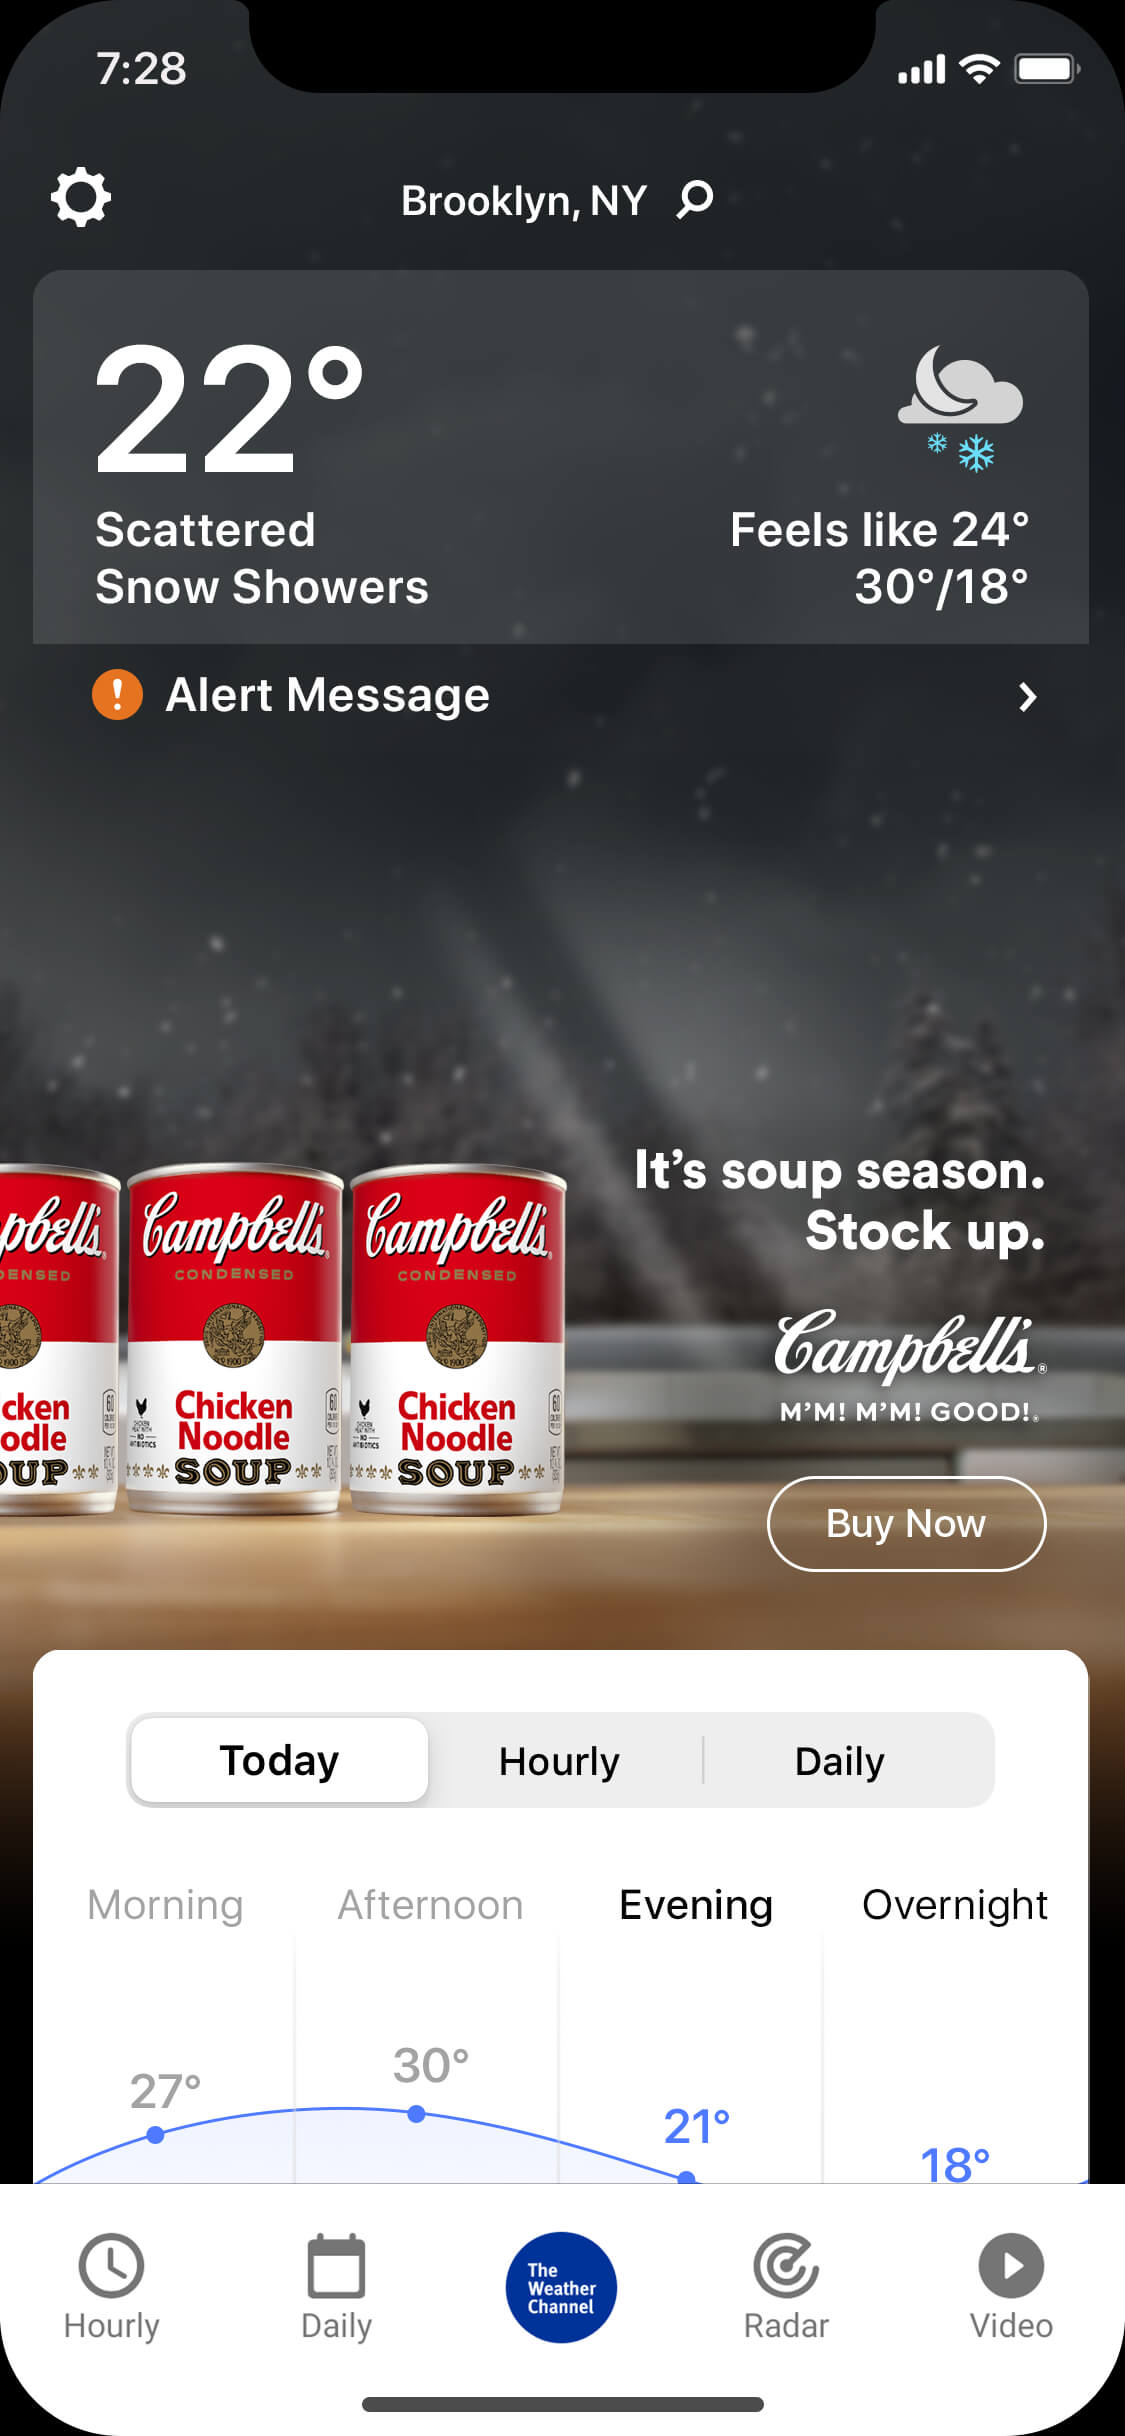 campbells-stockup_wintry-night